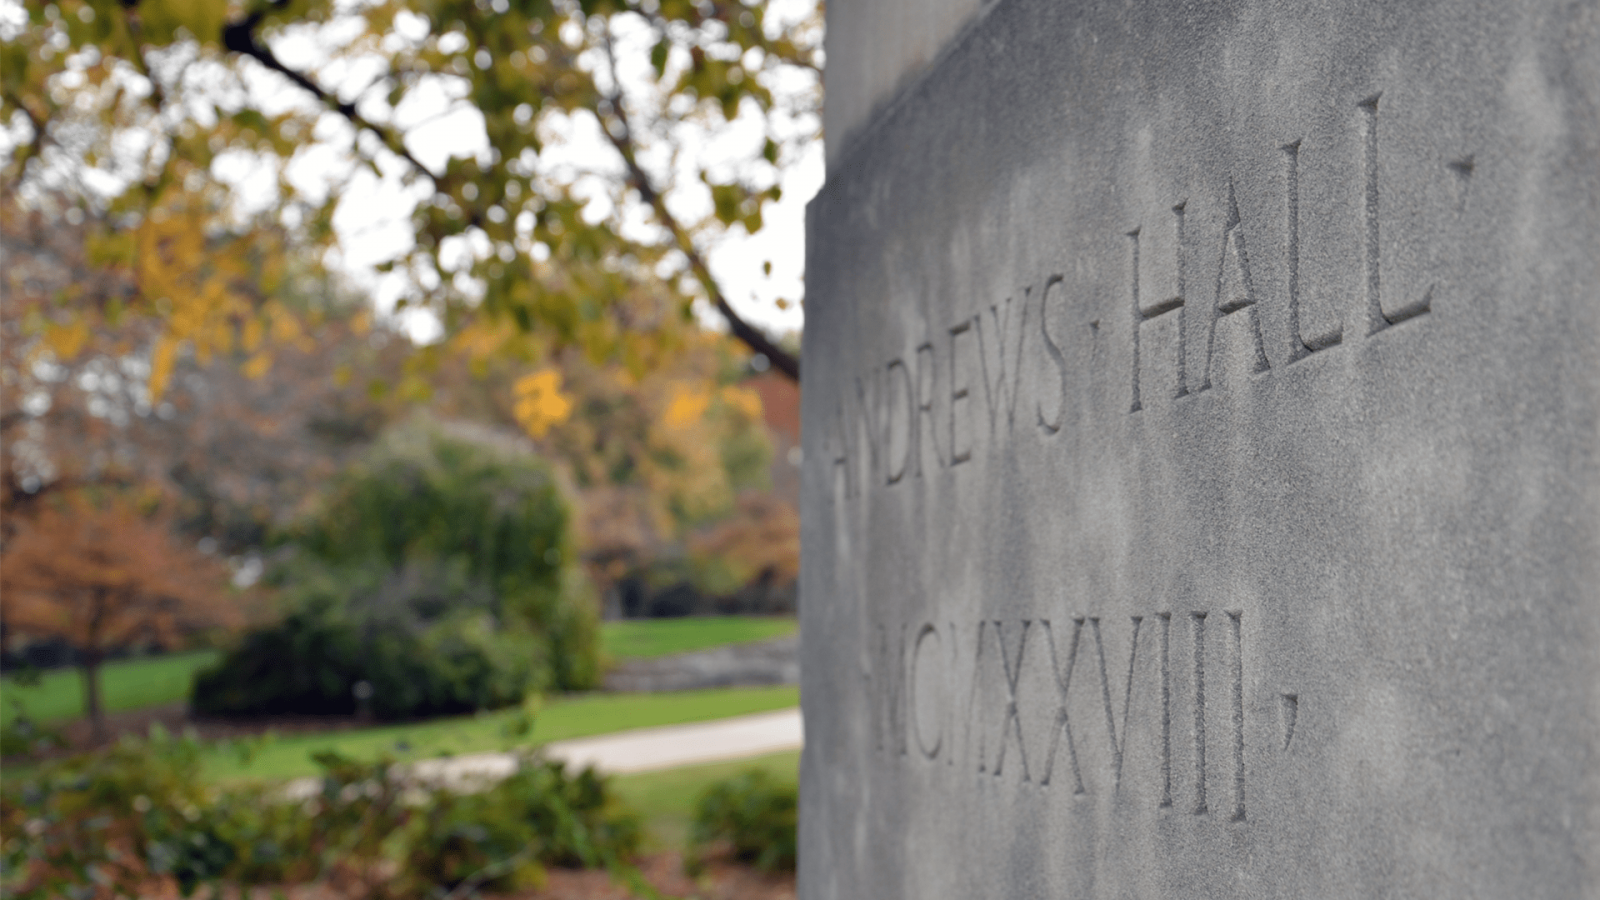 Cornerstone of Andrew Hall with engraving 'Andrews Hall MCMXXVII'